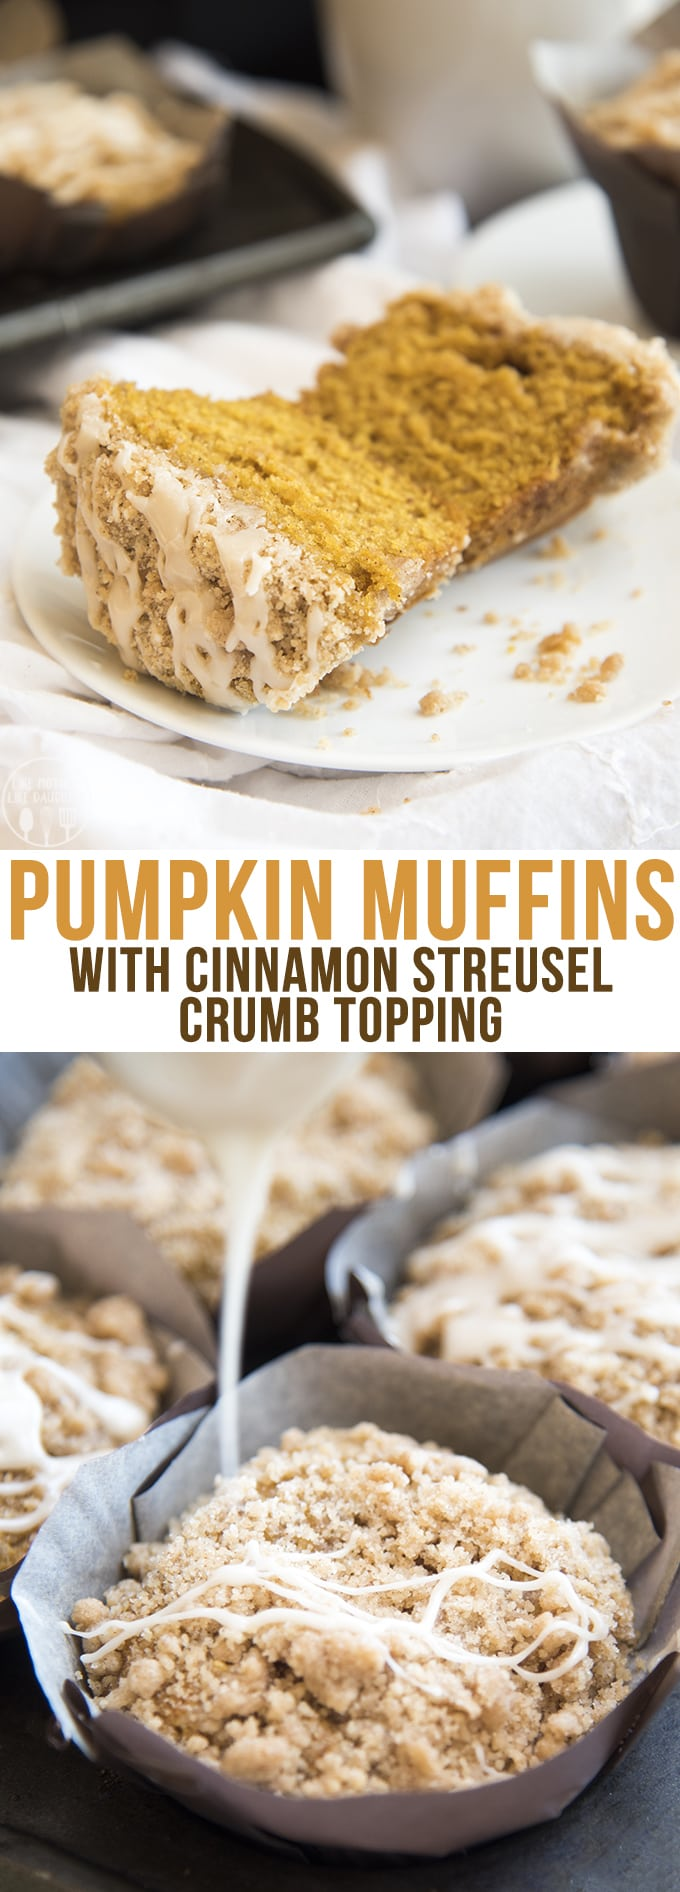 These Pumpkin Muffins are perfection. They are moist, flavorful, and topped with a cinnamon streusel crumb topping and a drizzle of vanilla icing; the perfect pumpkin treat!